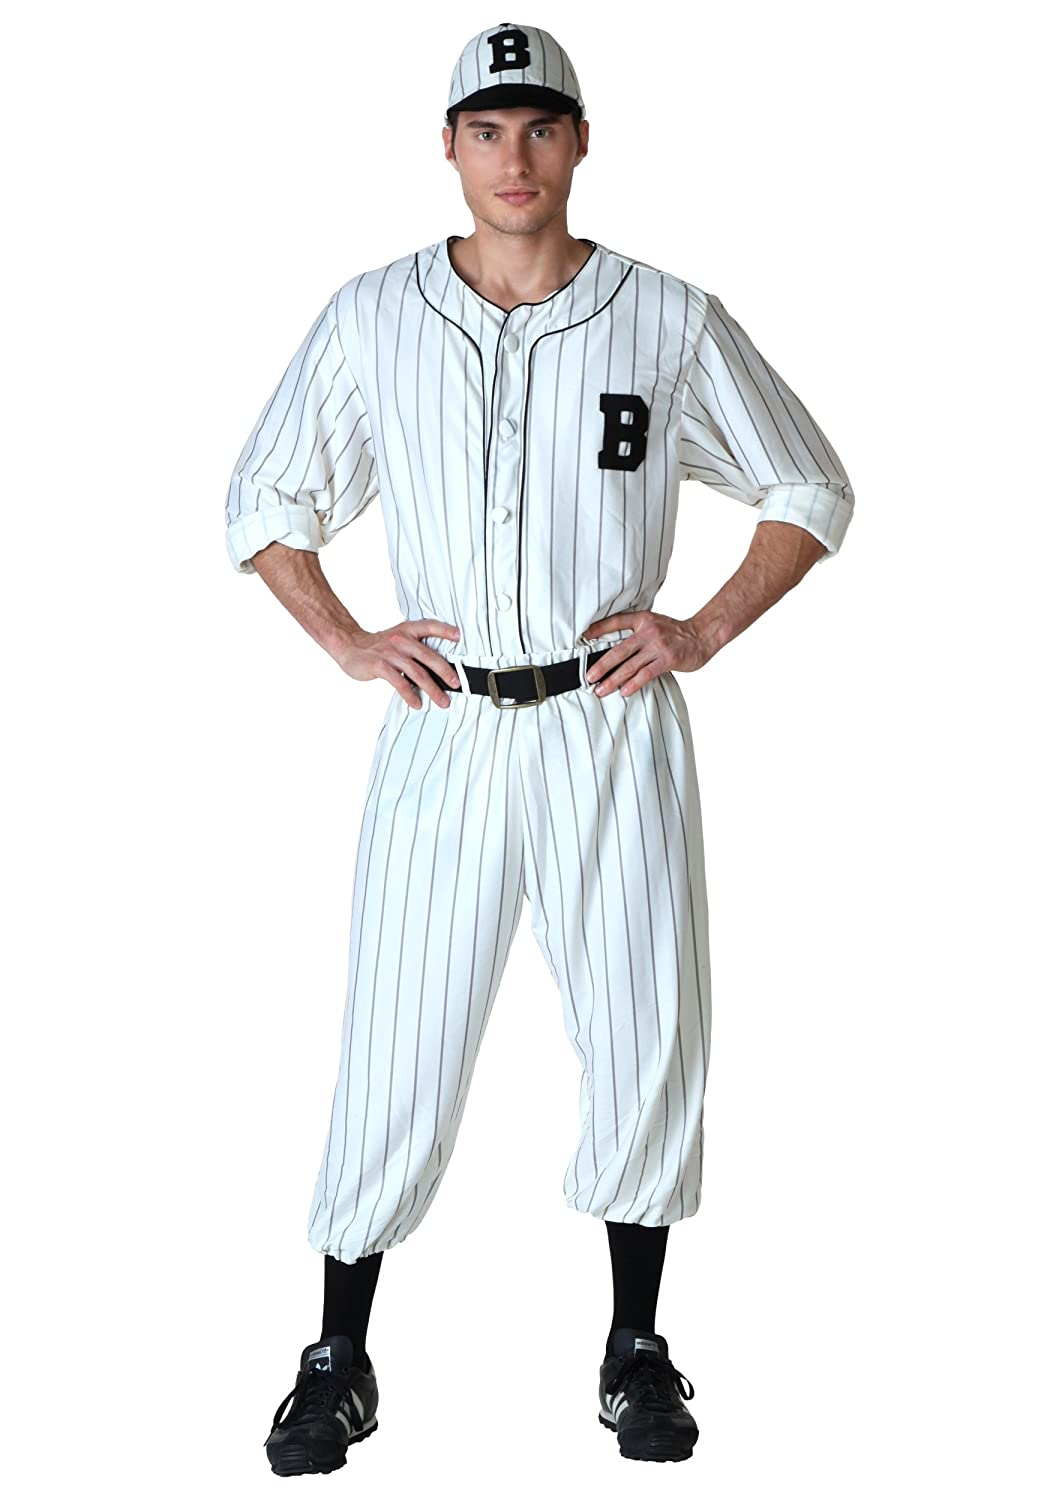 1930s Men's Costumes: Gangster, Clyde Barrow, Mummy, Dracula, Frankenstein Adult Vintage Baseball Costume $49.99 AT vintagedancer.com